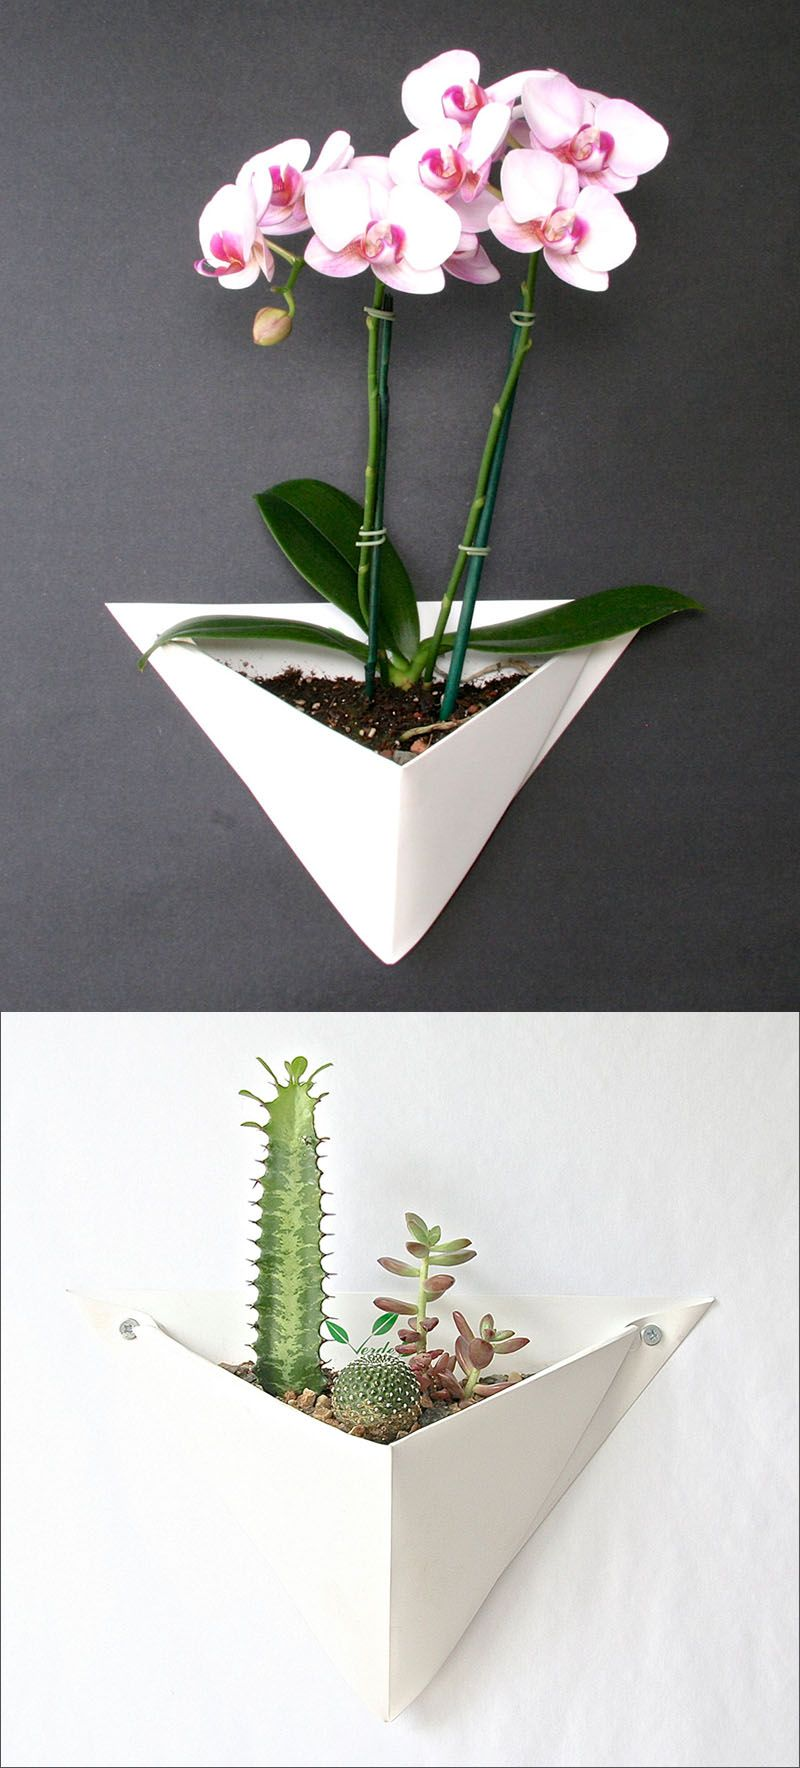 10 Modern Wall Mounted Plant Holders To Decorate Bare Walls. Succulent Wall  GardensIndoor ...